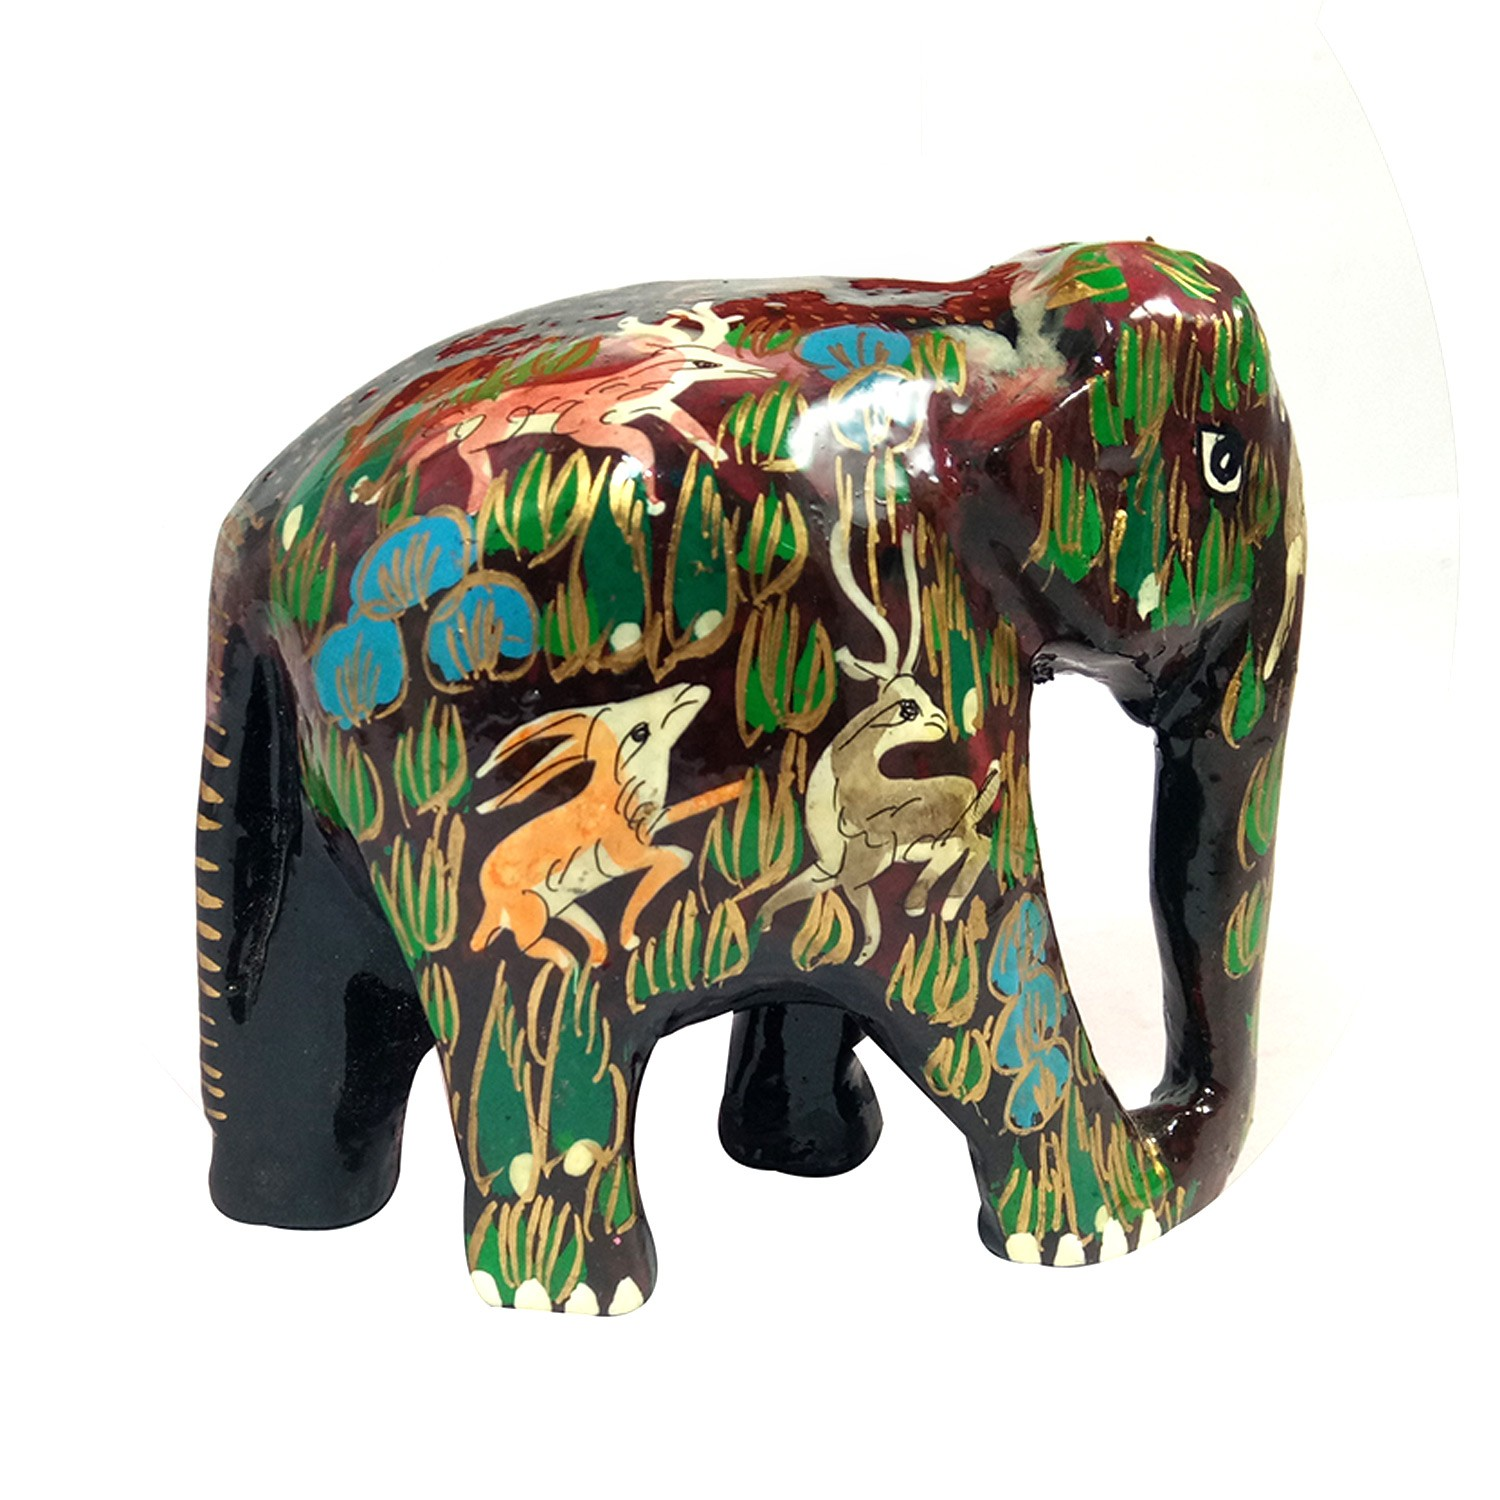 Handmade exclusive paper mache Multicolor Elephant  By Rural Artisan.